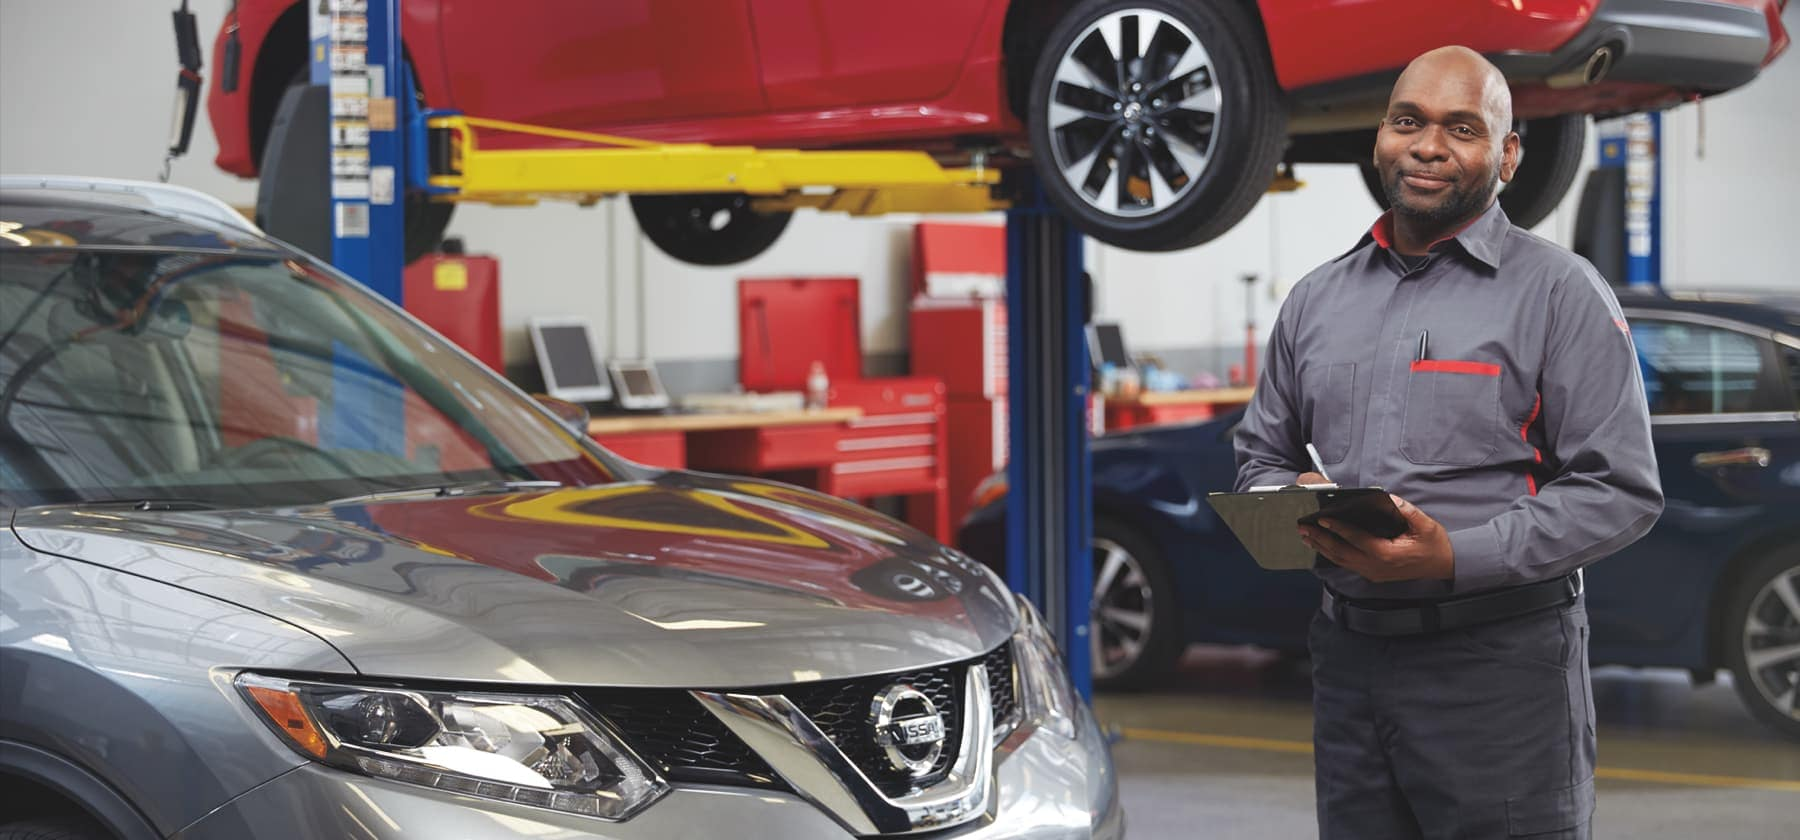 Mechanic standing by silver Nissan SUV